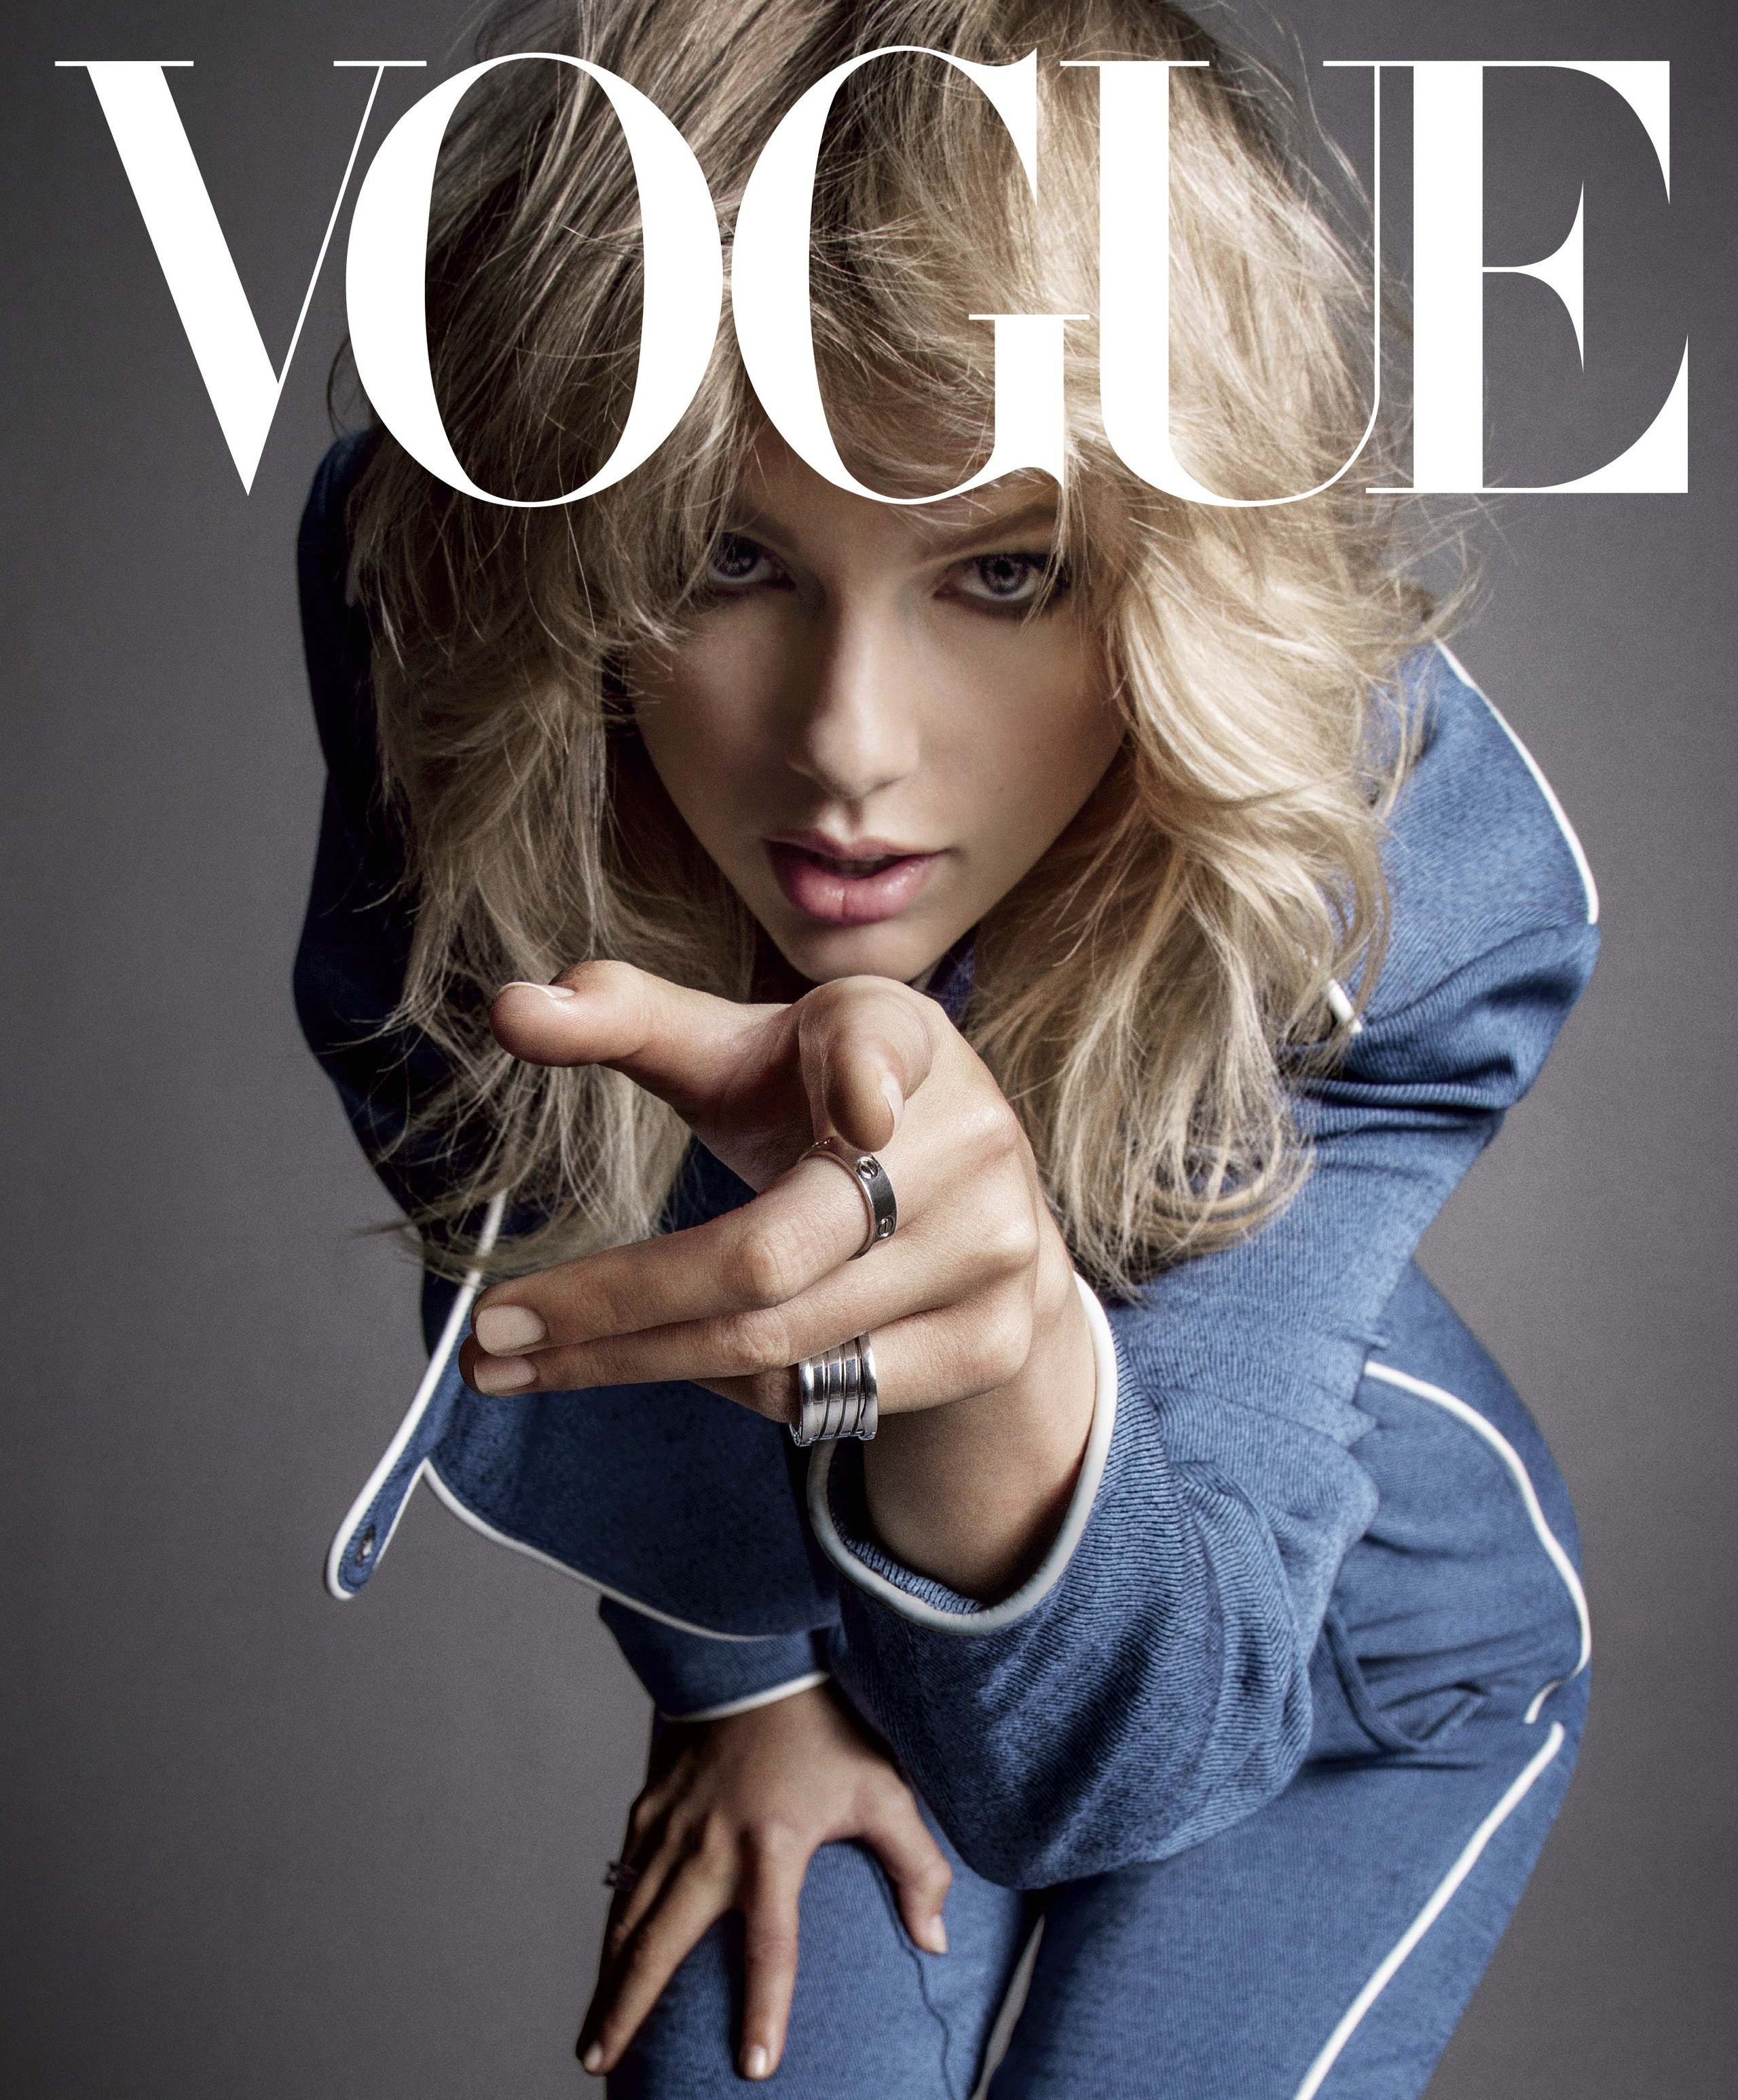 Free Download Taylor Swifts September Issue The Singer On Sexism Scrutiny 2560x3094 For Your Desktop Mobile Tablet Explore 39 Taylor Swift 2020 Wallpapers Taylor Swift 2020 Wallpapers Taylor Swift Backgrounds Taylor Swift Wallpaper